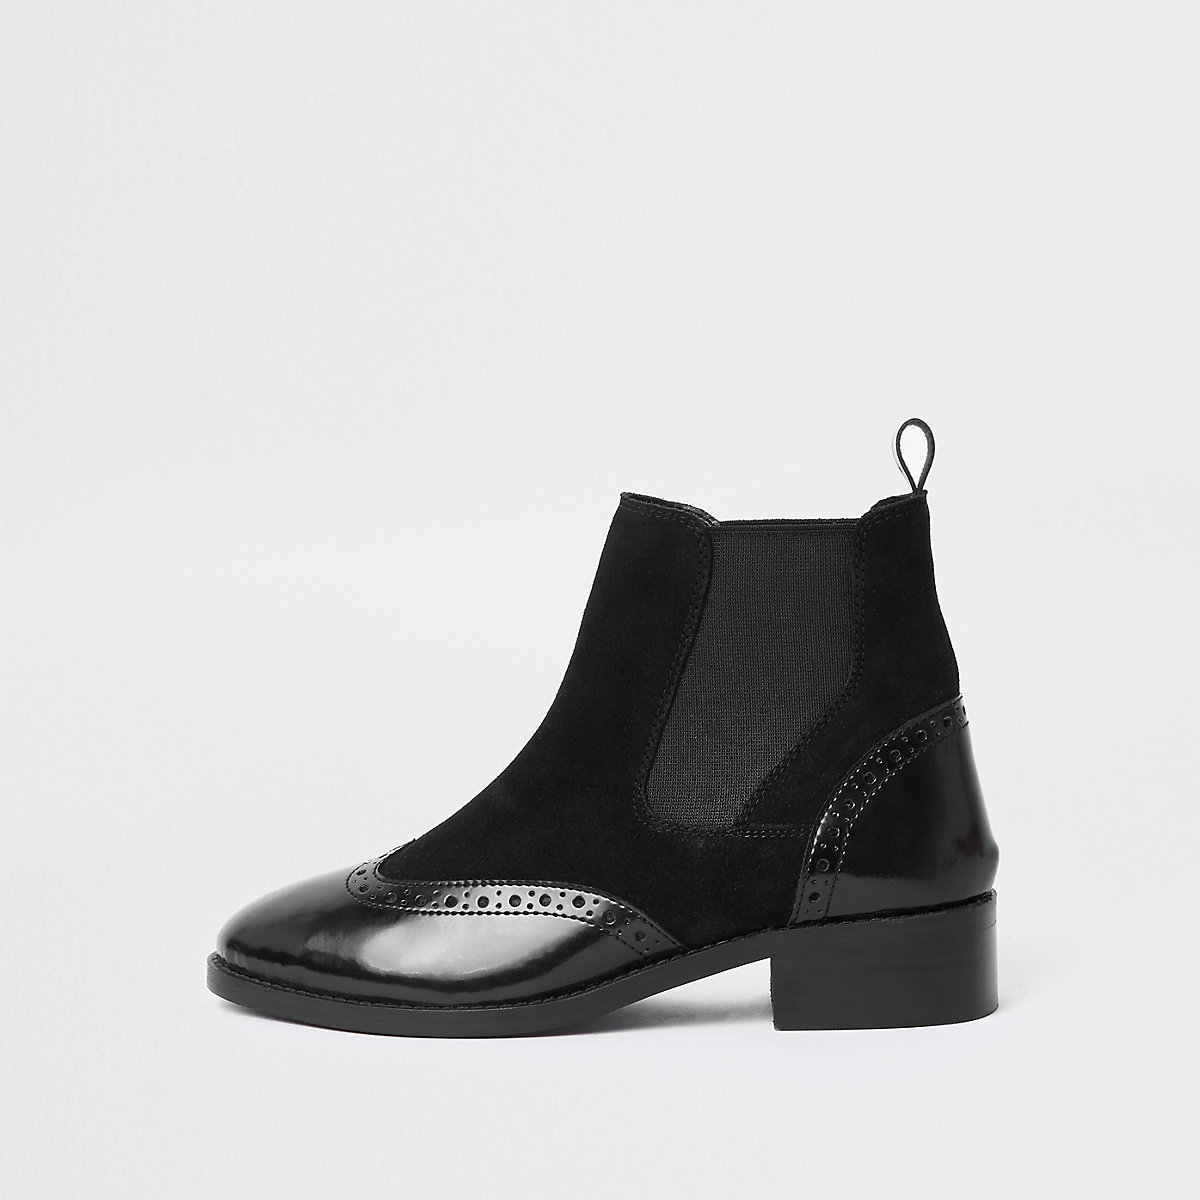 Bottines richelieu noires